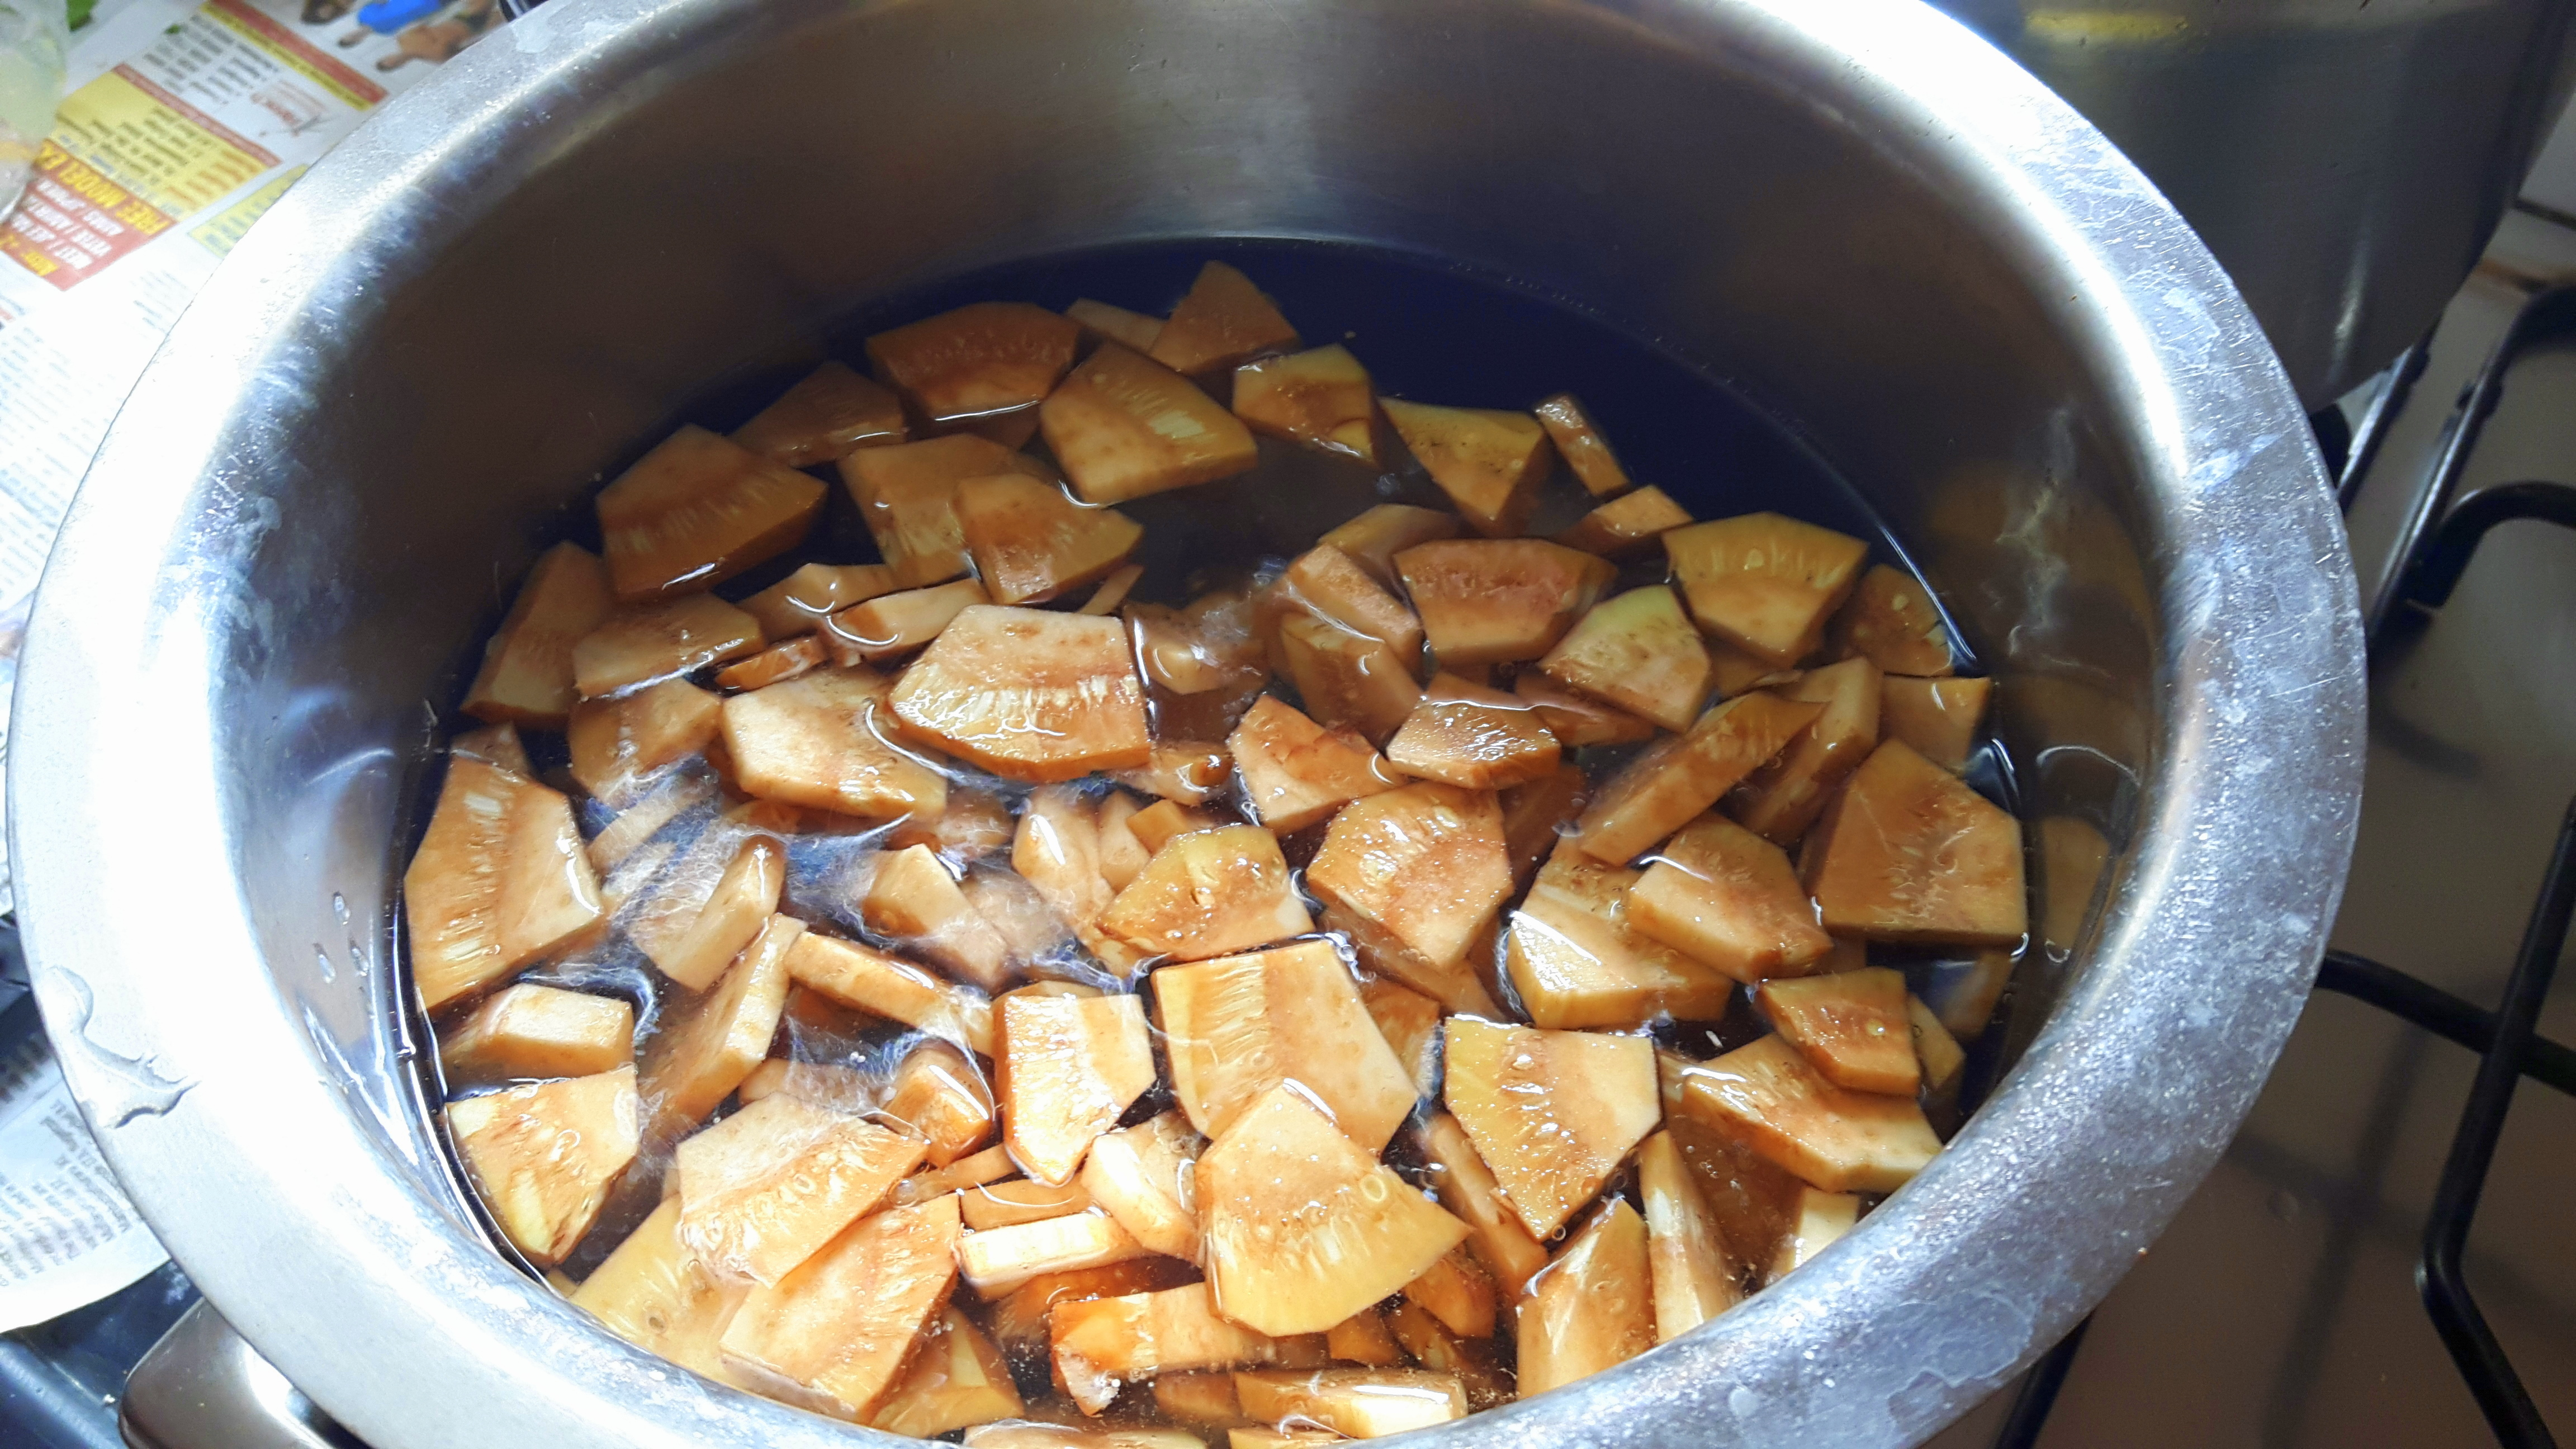 Blanch by putting raw jackfruit into the boiling water